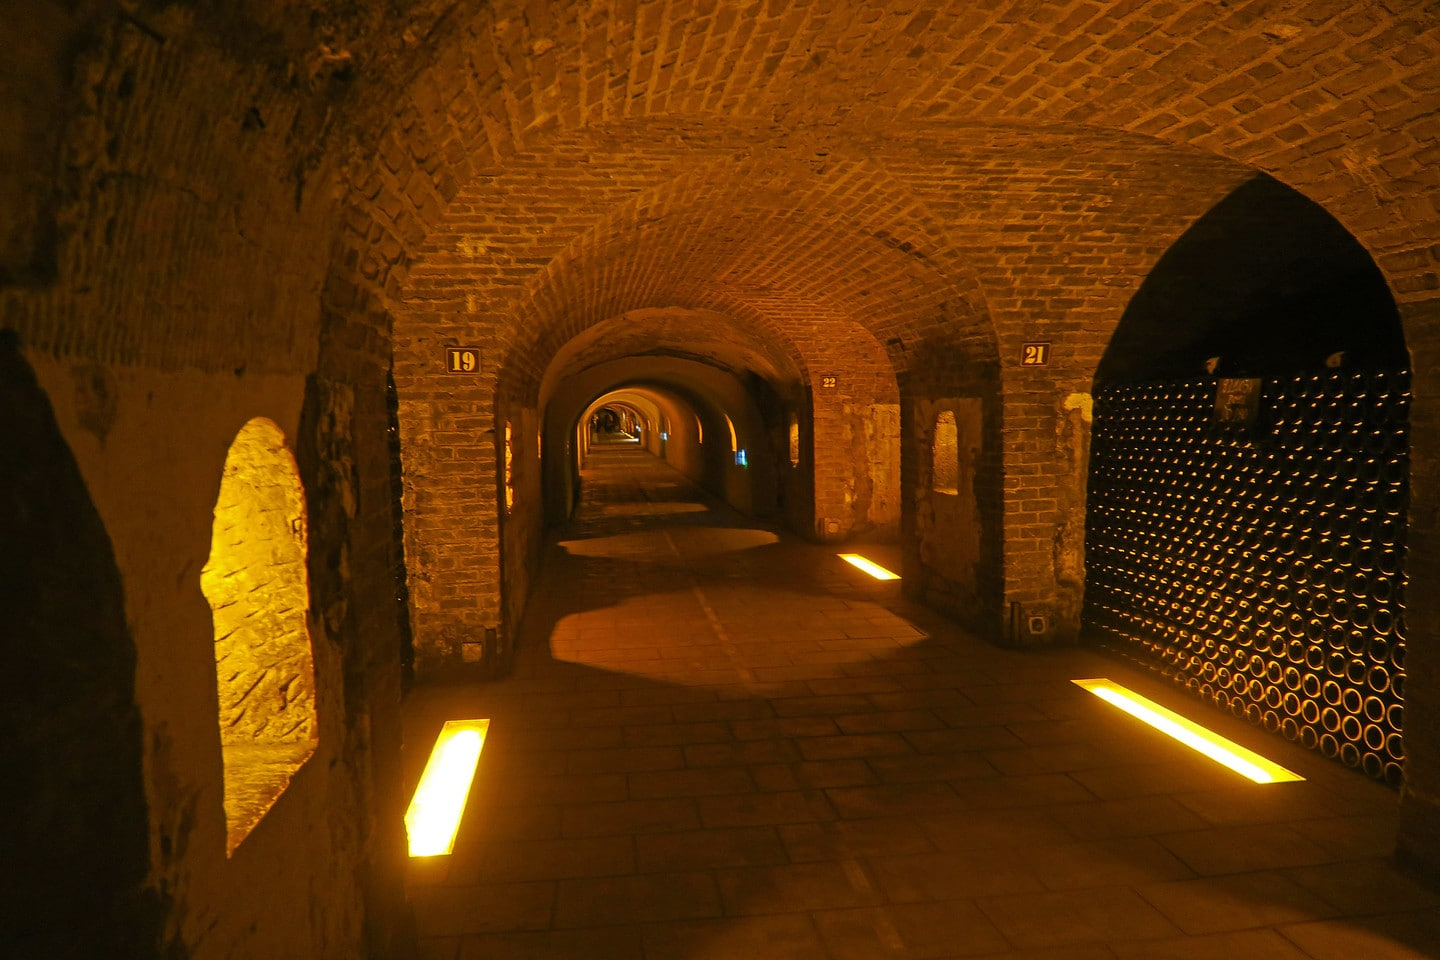 Visit the Maison Moêt et Chandon One of the most beautiful cellars in Epernay